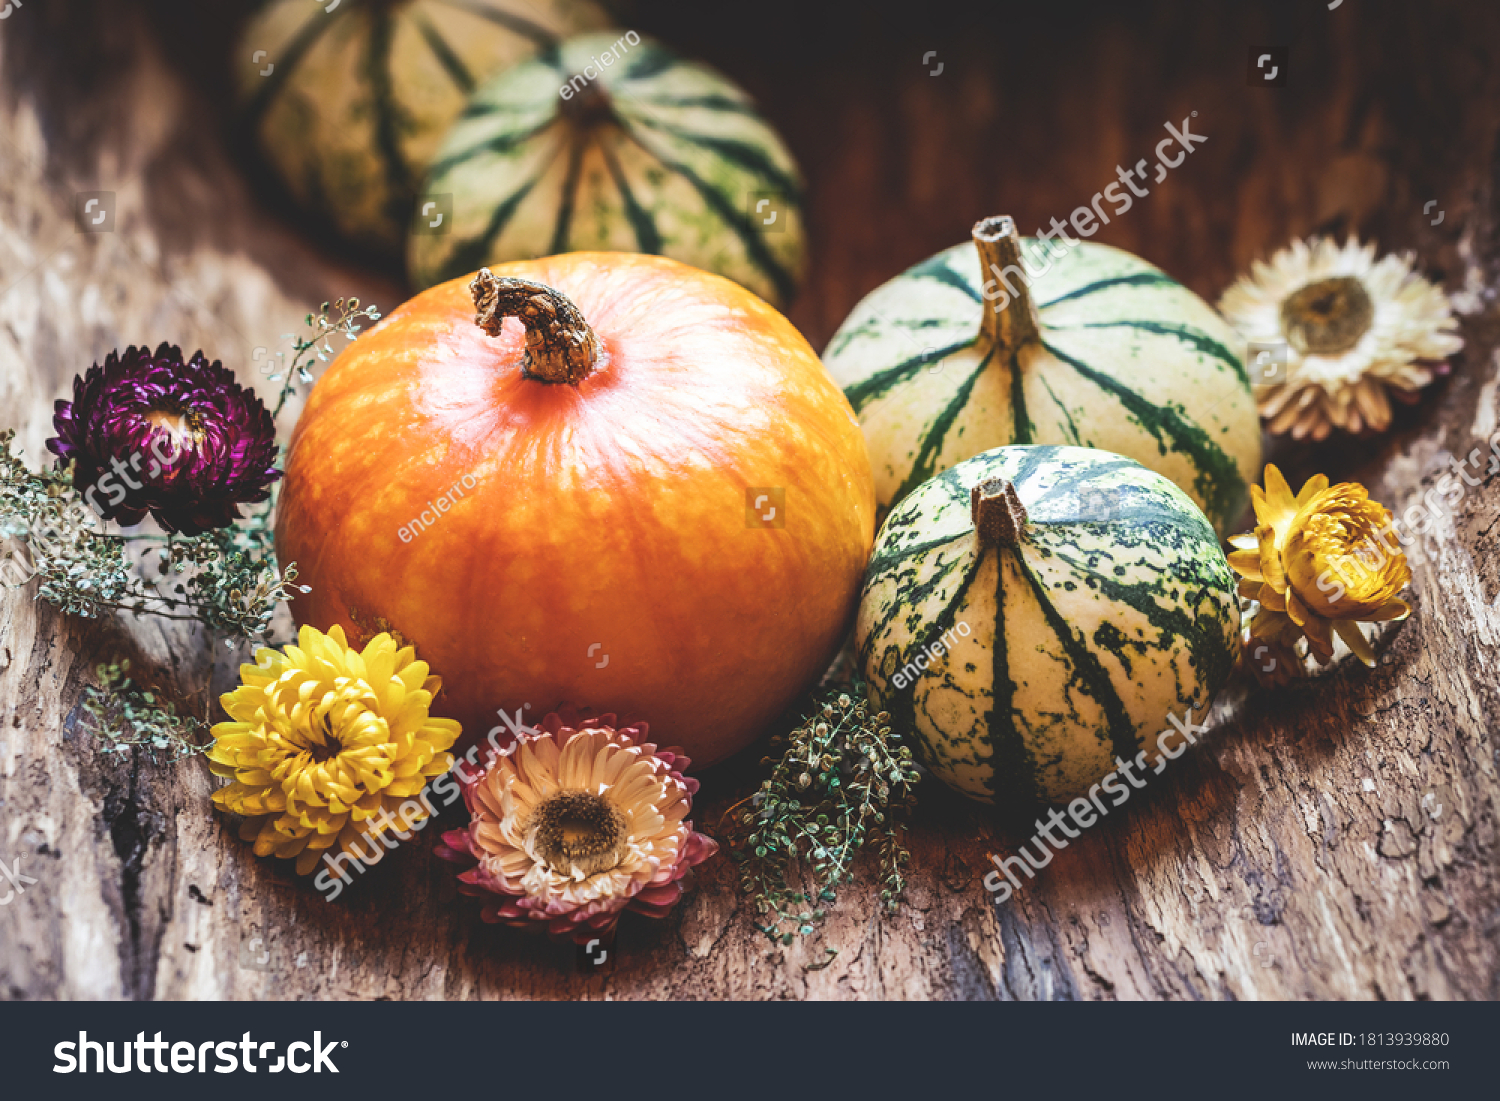 Pumpkins and dried flower. Thanksgiving day or halloween, autumn greeting background. Fall season still life concept #1813939880